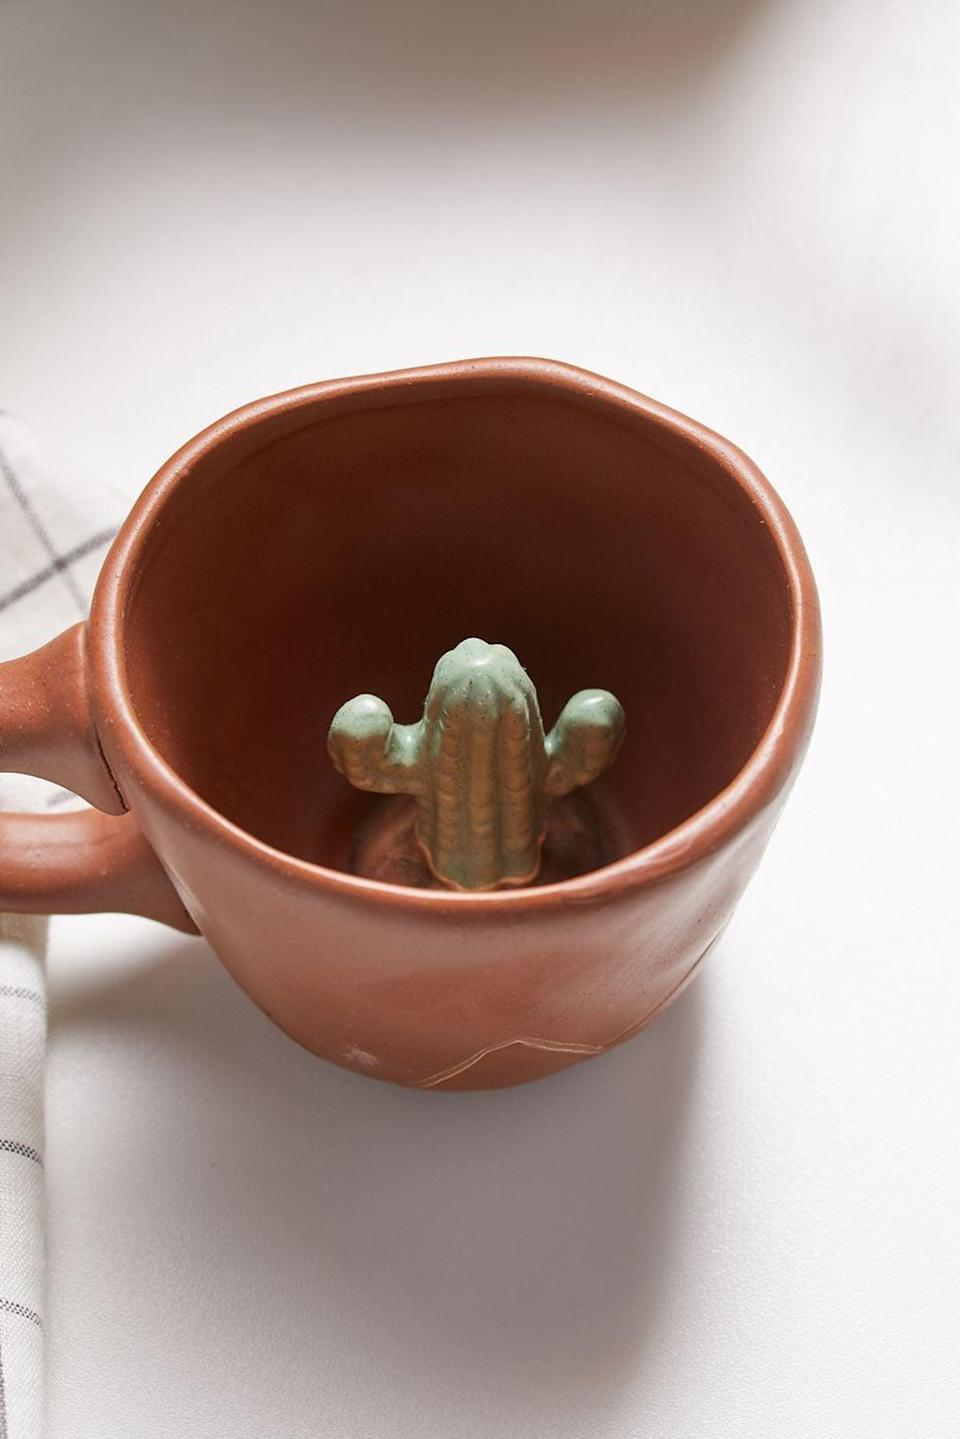 <p>Start off their mornings with the <span>Peekaboo Ceramic Mug</span> ($14). It has a cute surprise at the bottom of their mug. It also comes in green with flower mushroom detailing.</p>